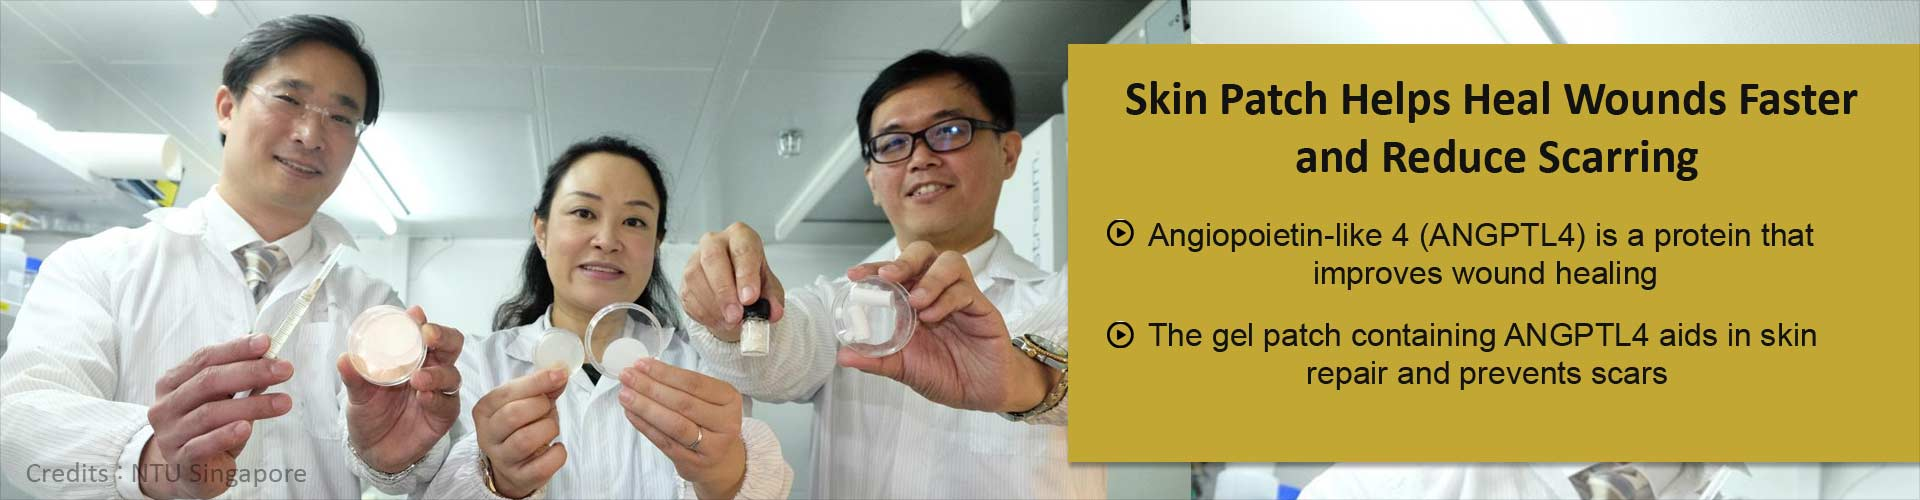 Skin patch helps heal wounds faster and reduce scarring - Angiopoietin-like 4 (ANGPTL4) is a protein that improves wound healing - The gel patch containing ANGPTL4 aids in skin repair and prevents scars